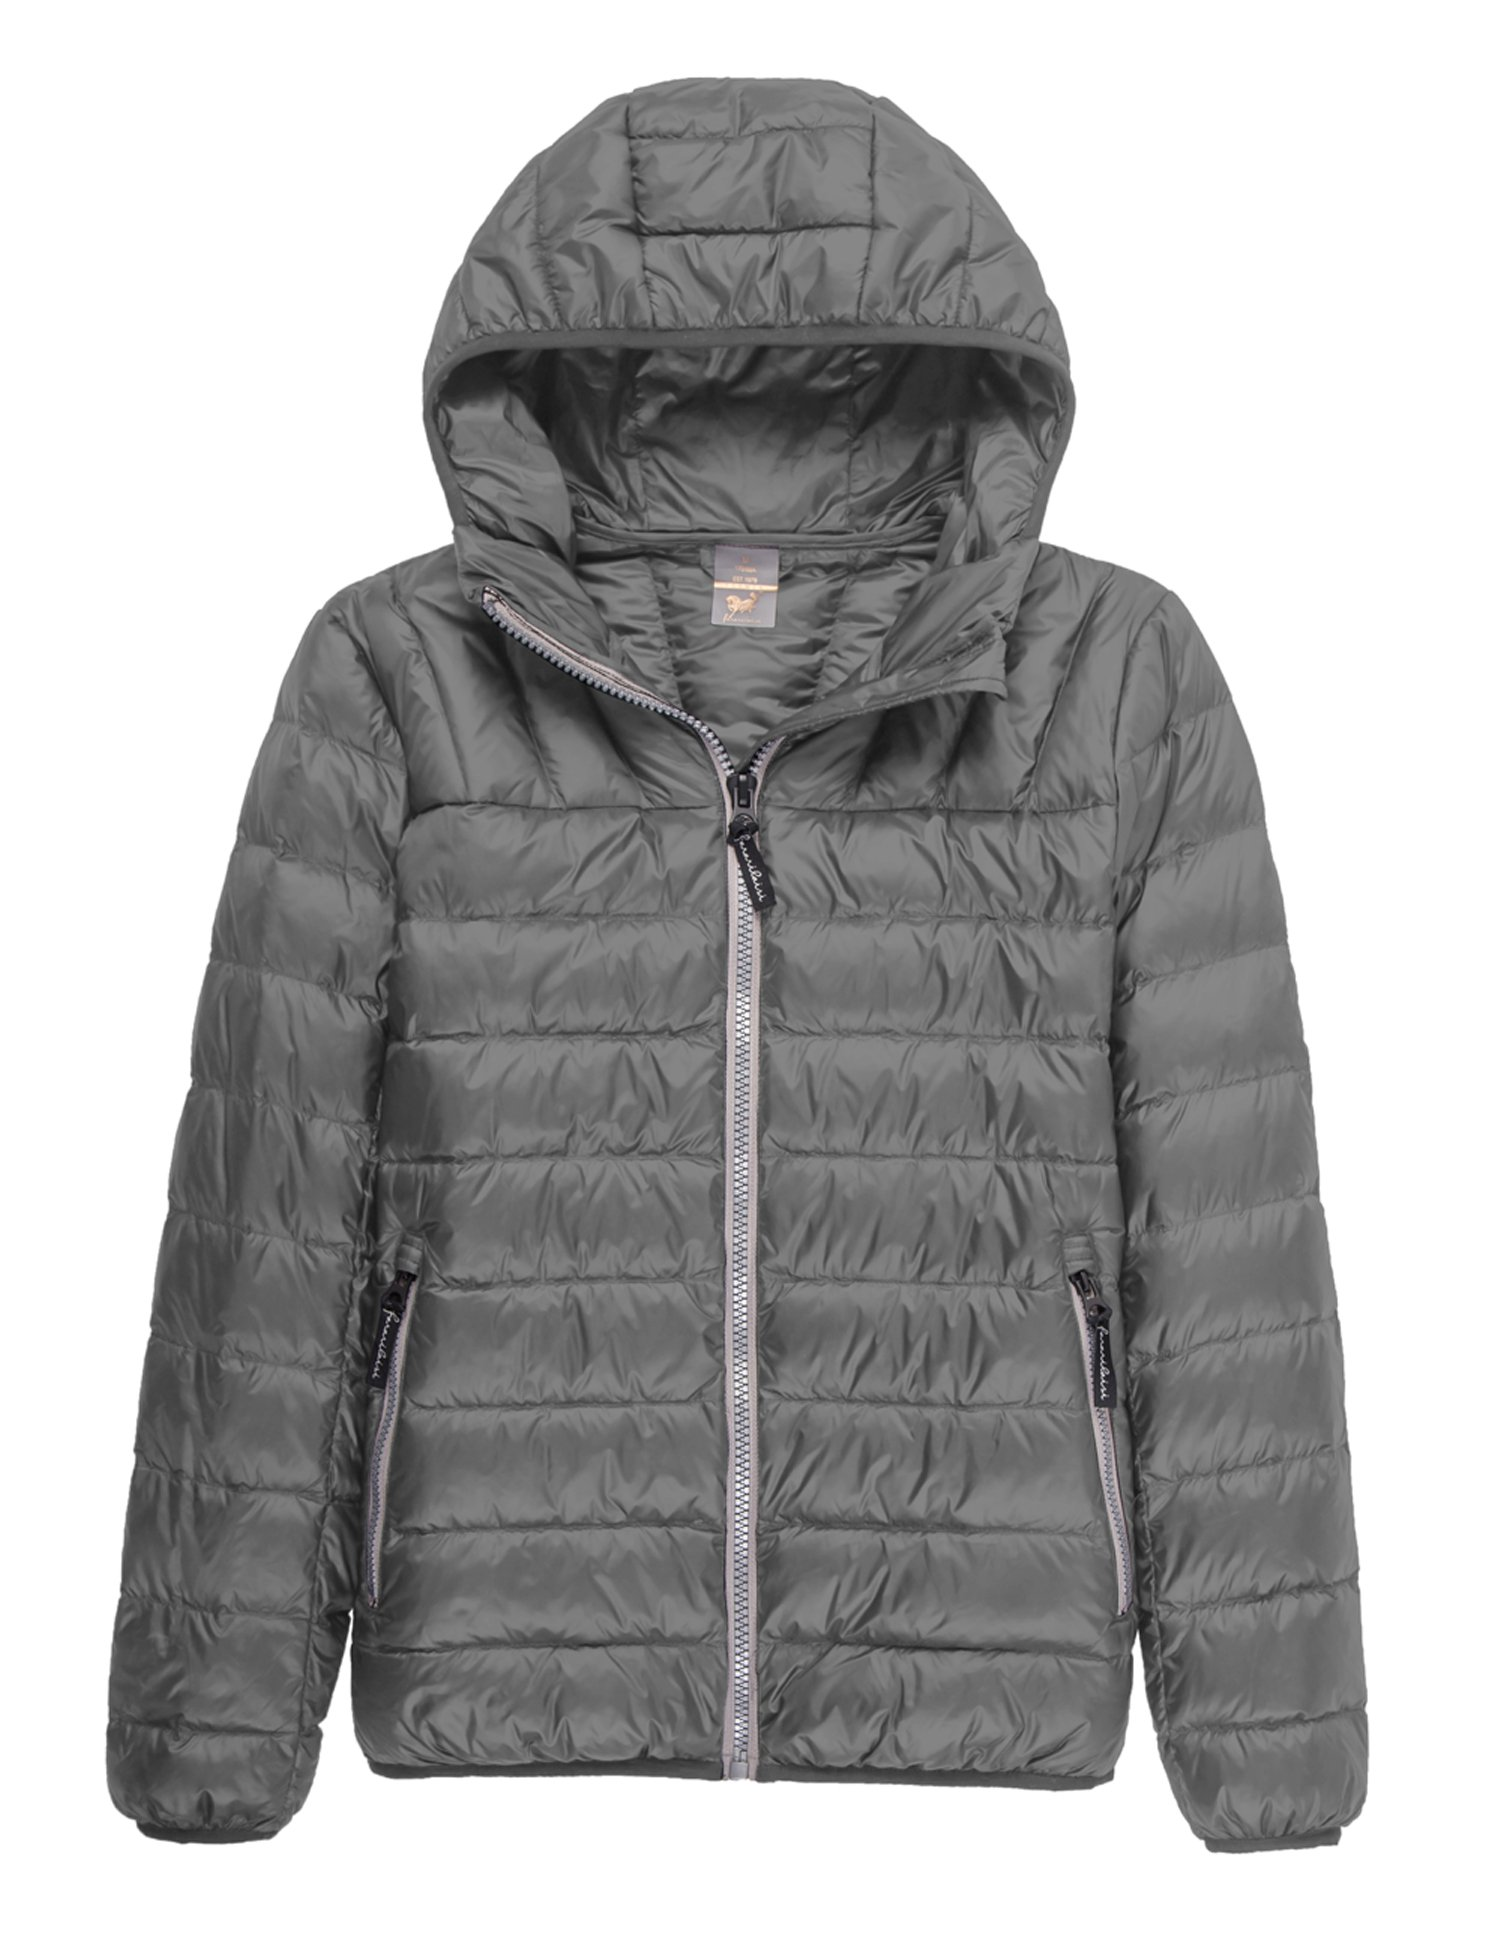 CHERRY CHICK Ultralight Unisex Style Hooded Down Jacket (2XL/Bust 48.8 inches, Unisex Space Grey)